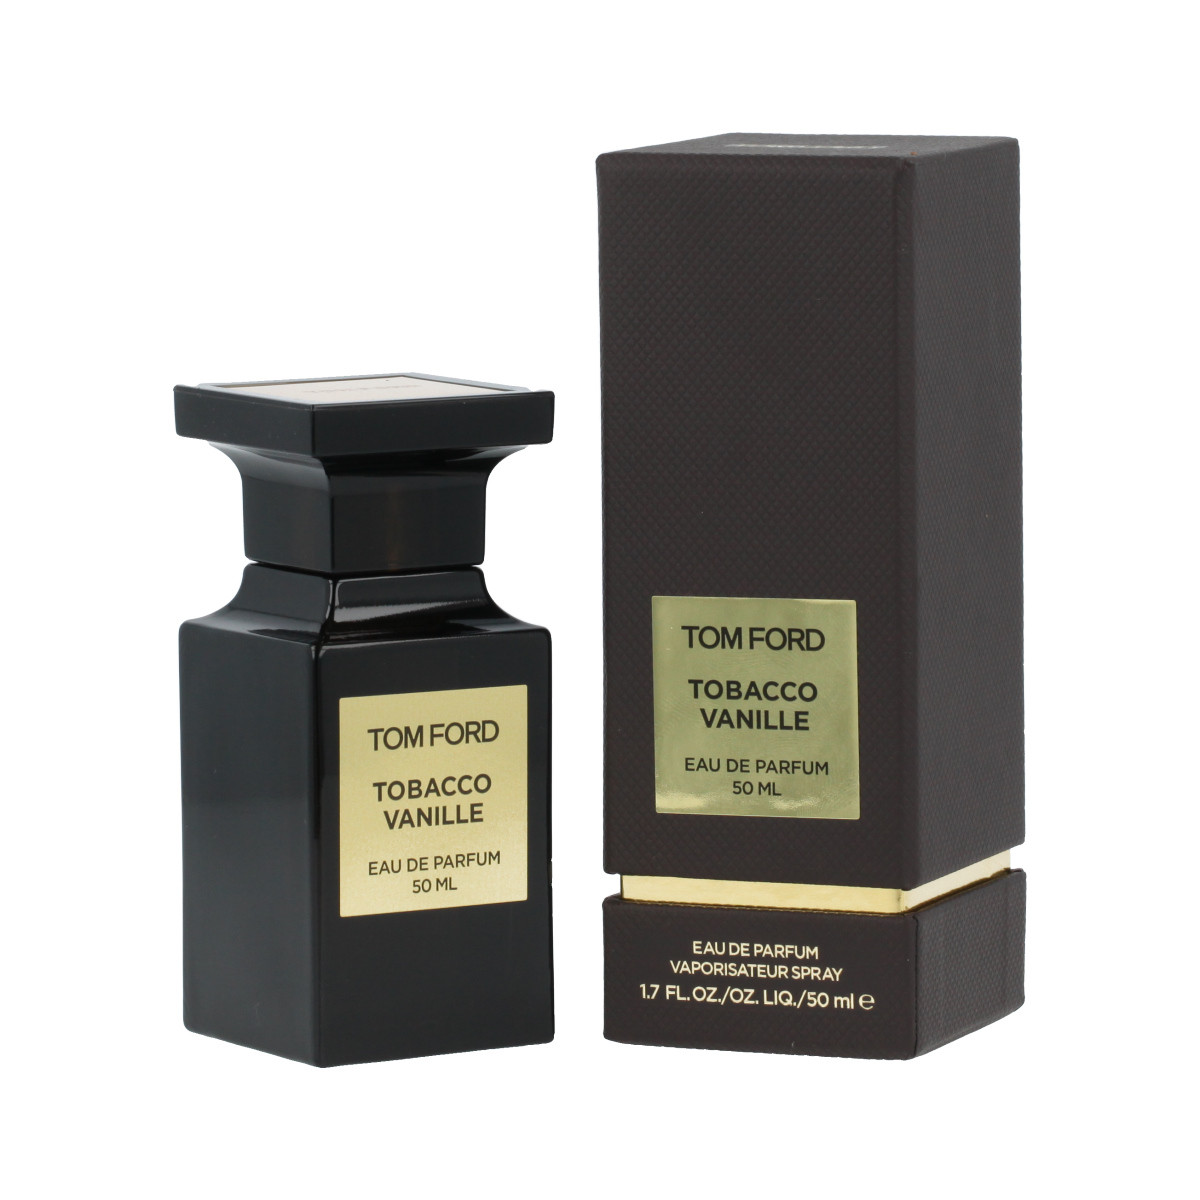 f5dae082c5 Tom Ford Tobacco Vanille EDP 50 ml UNISEX - Tobacco Vanille - Tom ...